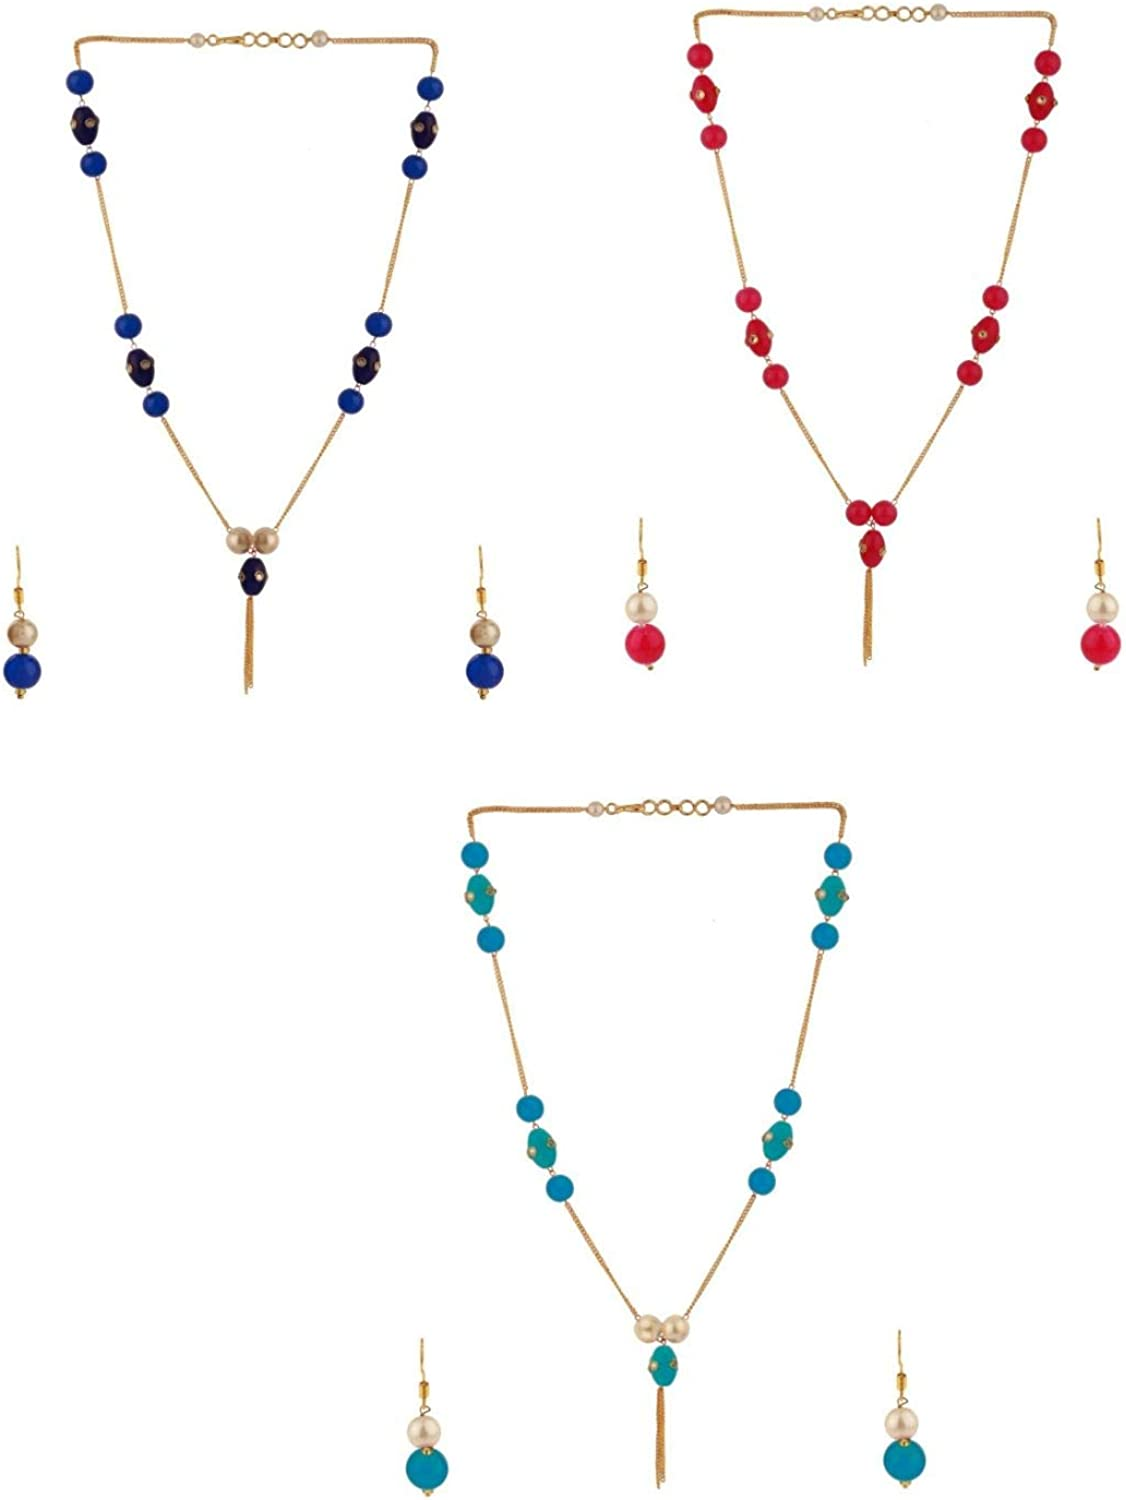 Efulgenz Pearl Chain Necklace Indian 14 K Gold Plated Red Faux Ruby Beads Strand Fashion Costume Jewelry